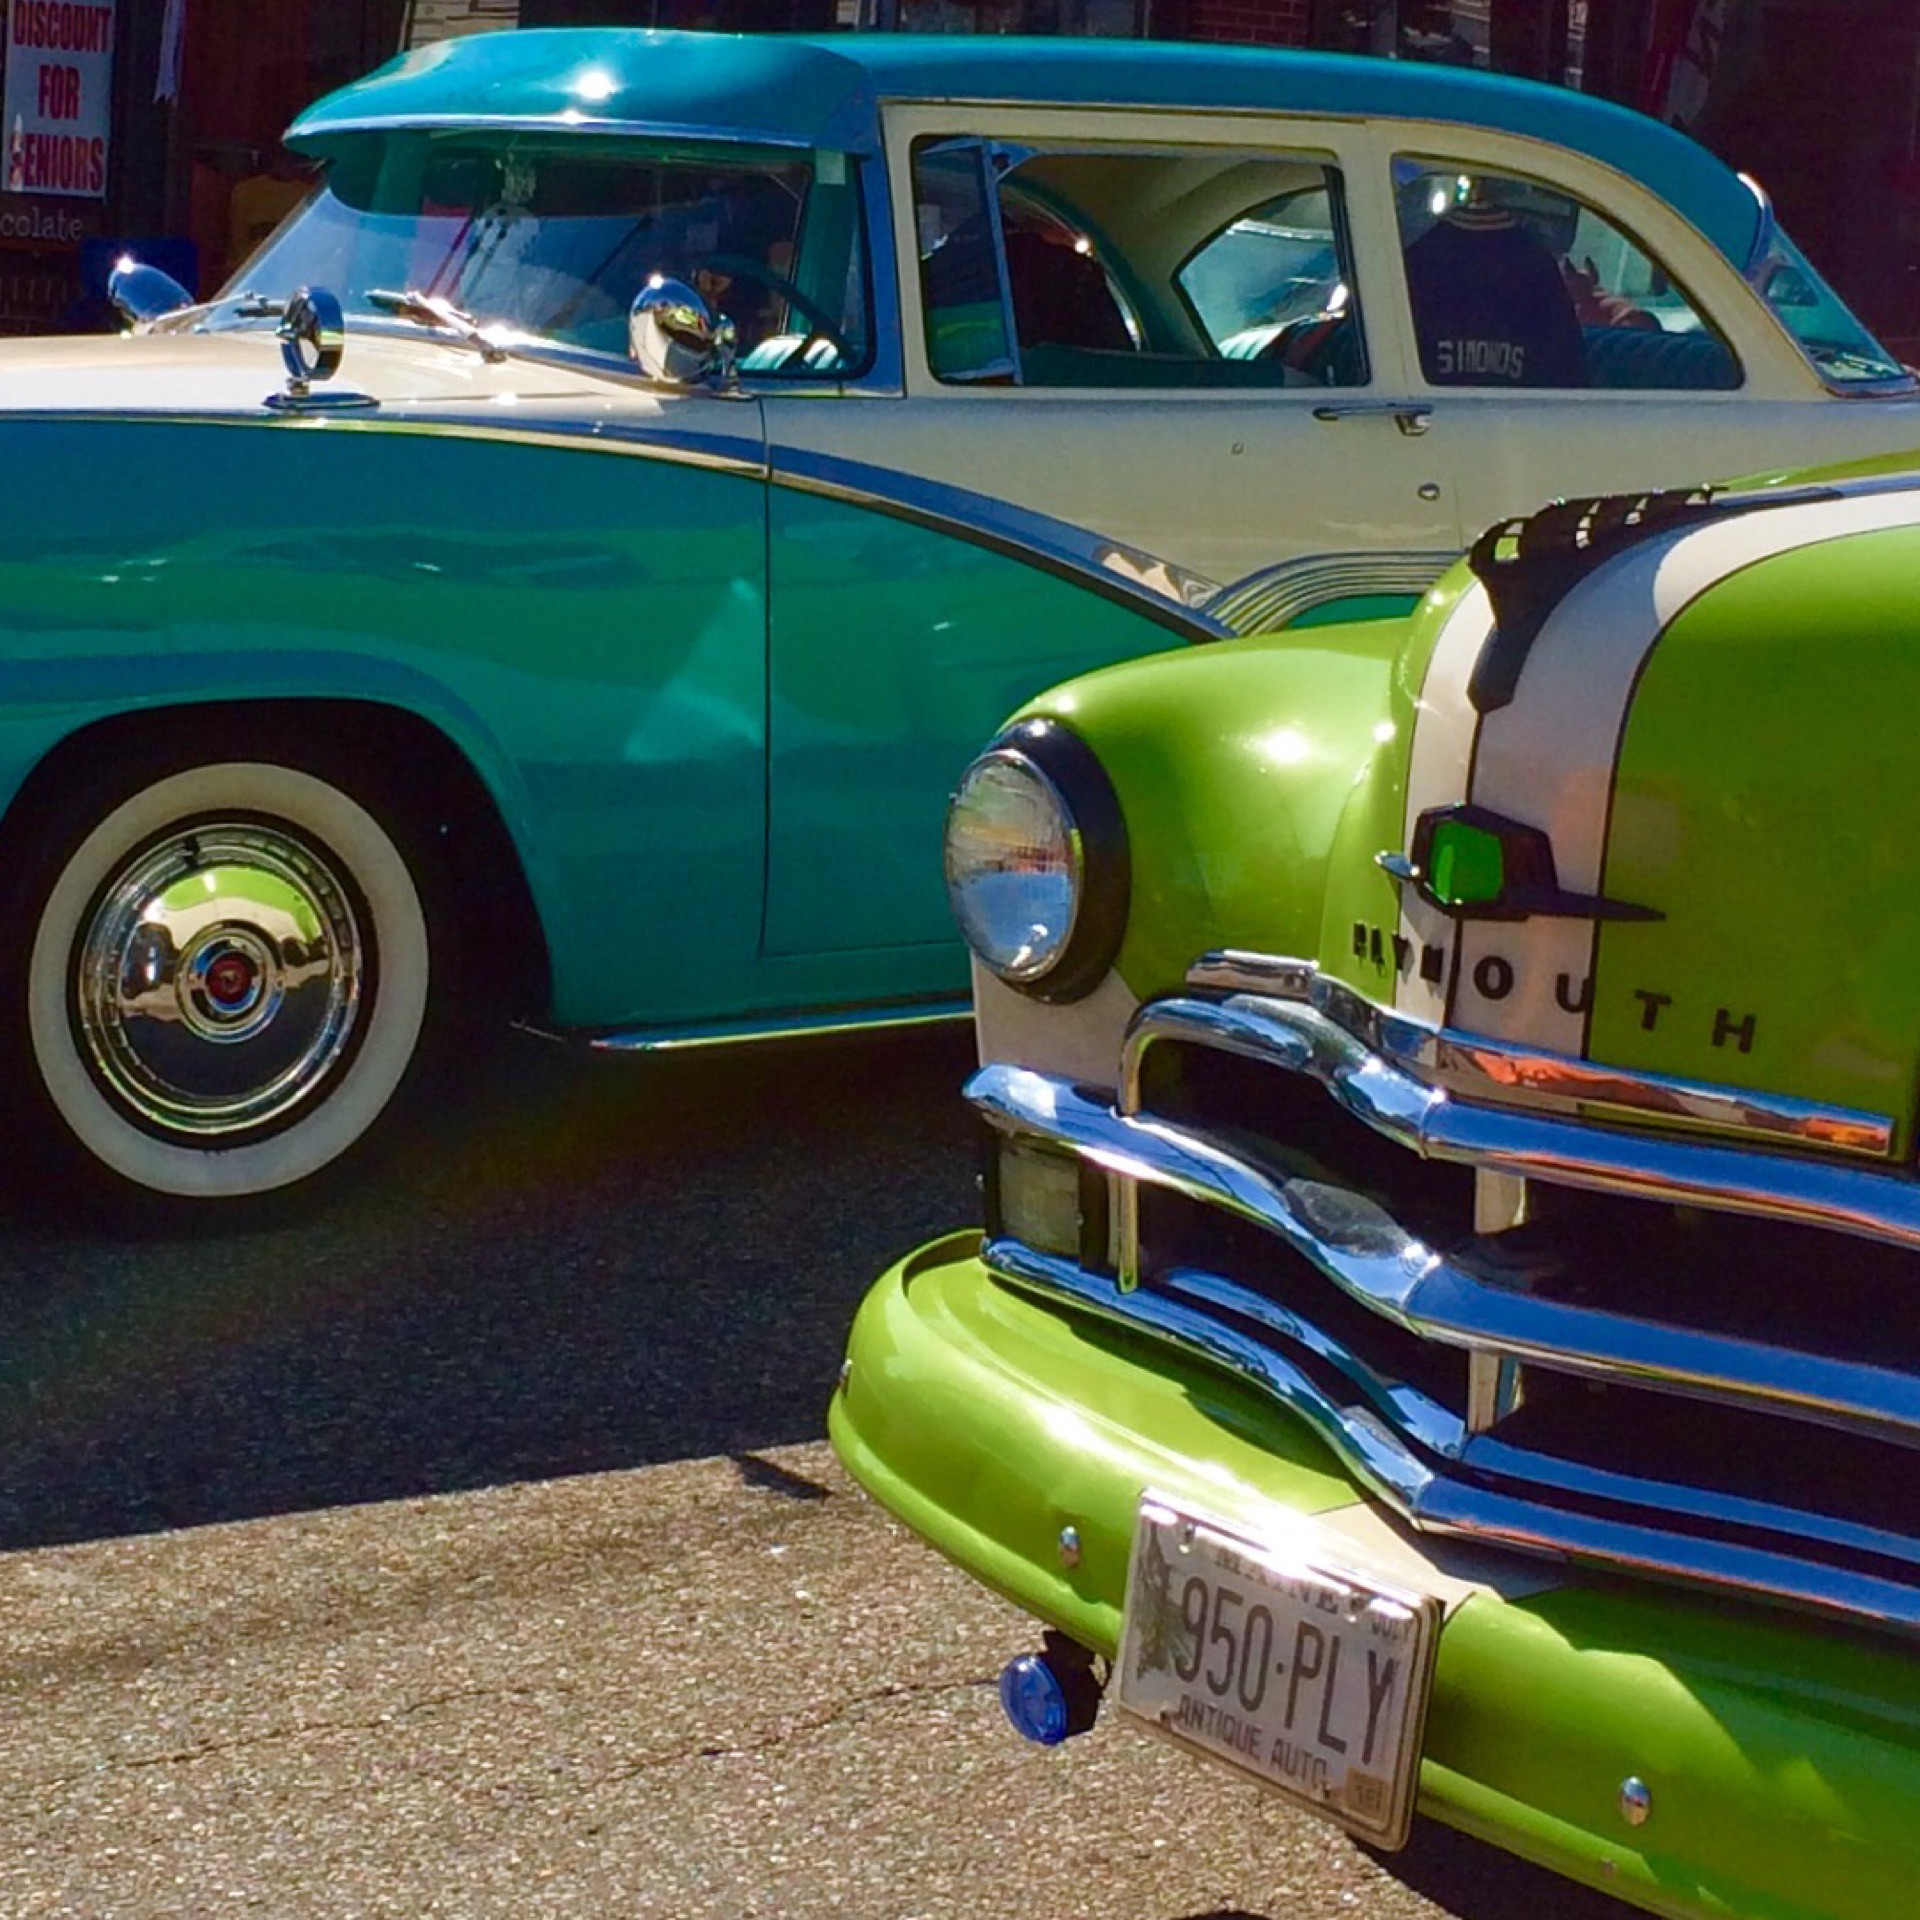 Car Show Sponsorship Old Orchard Beach Maine Chamber Of Commerce - Show car sponsorship